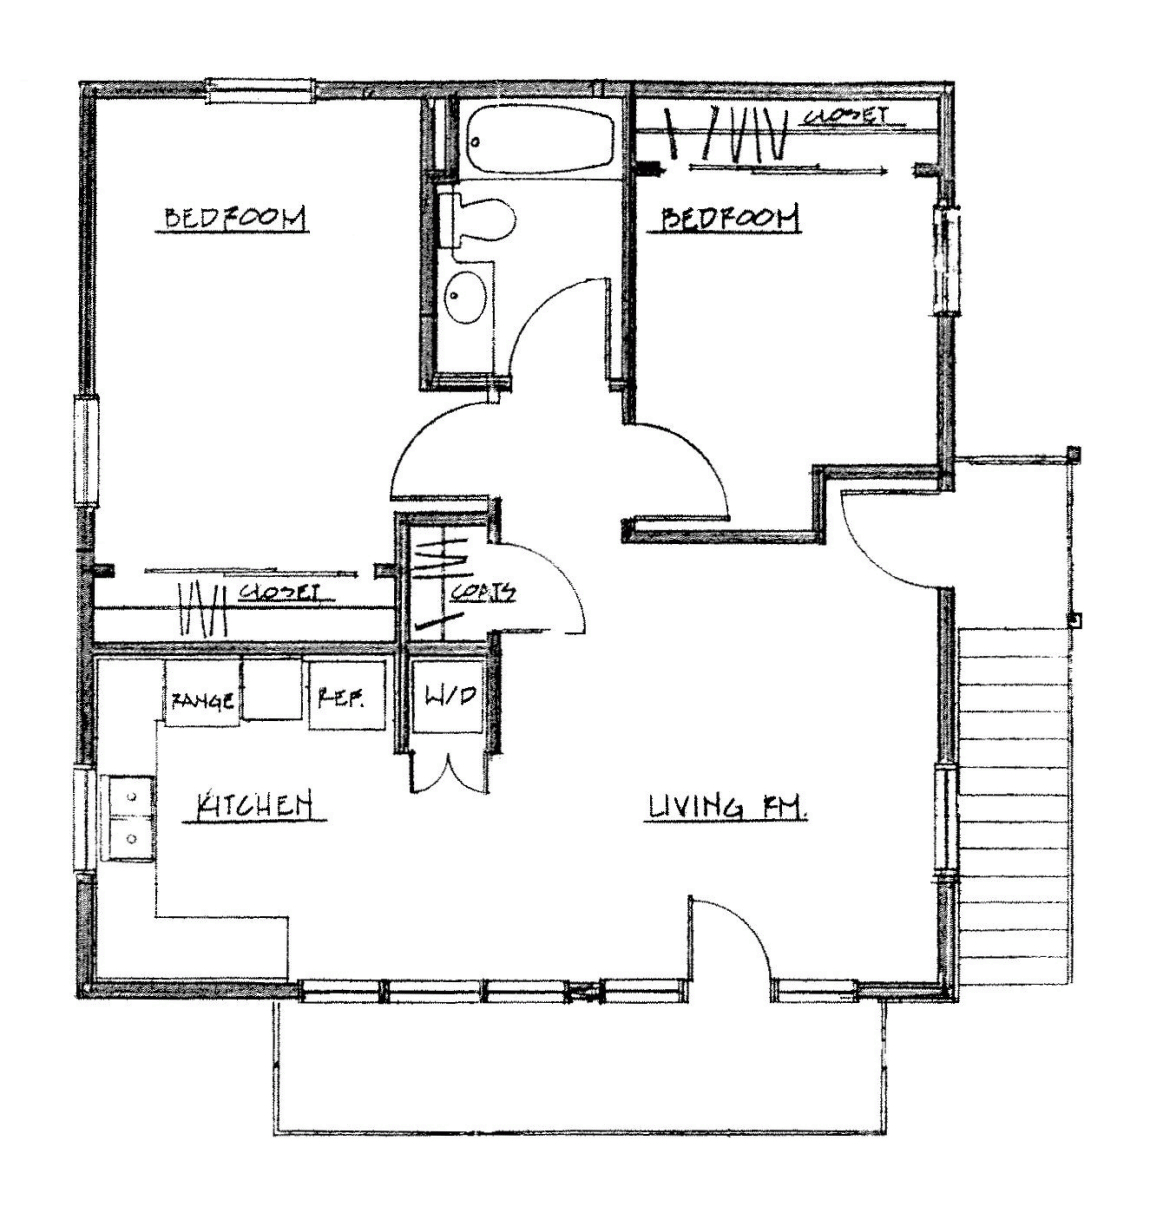 Glamorous 10X10 Bedroom Layout Average Size Of Living Room Bathroom What Is with Luxury Average Size Of A Master Bedroom